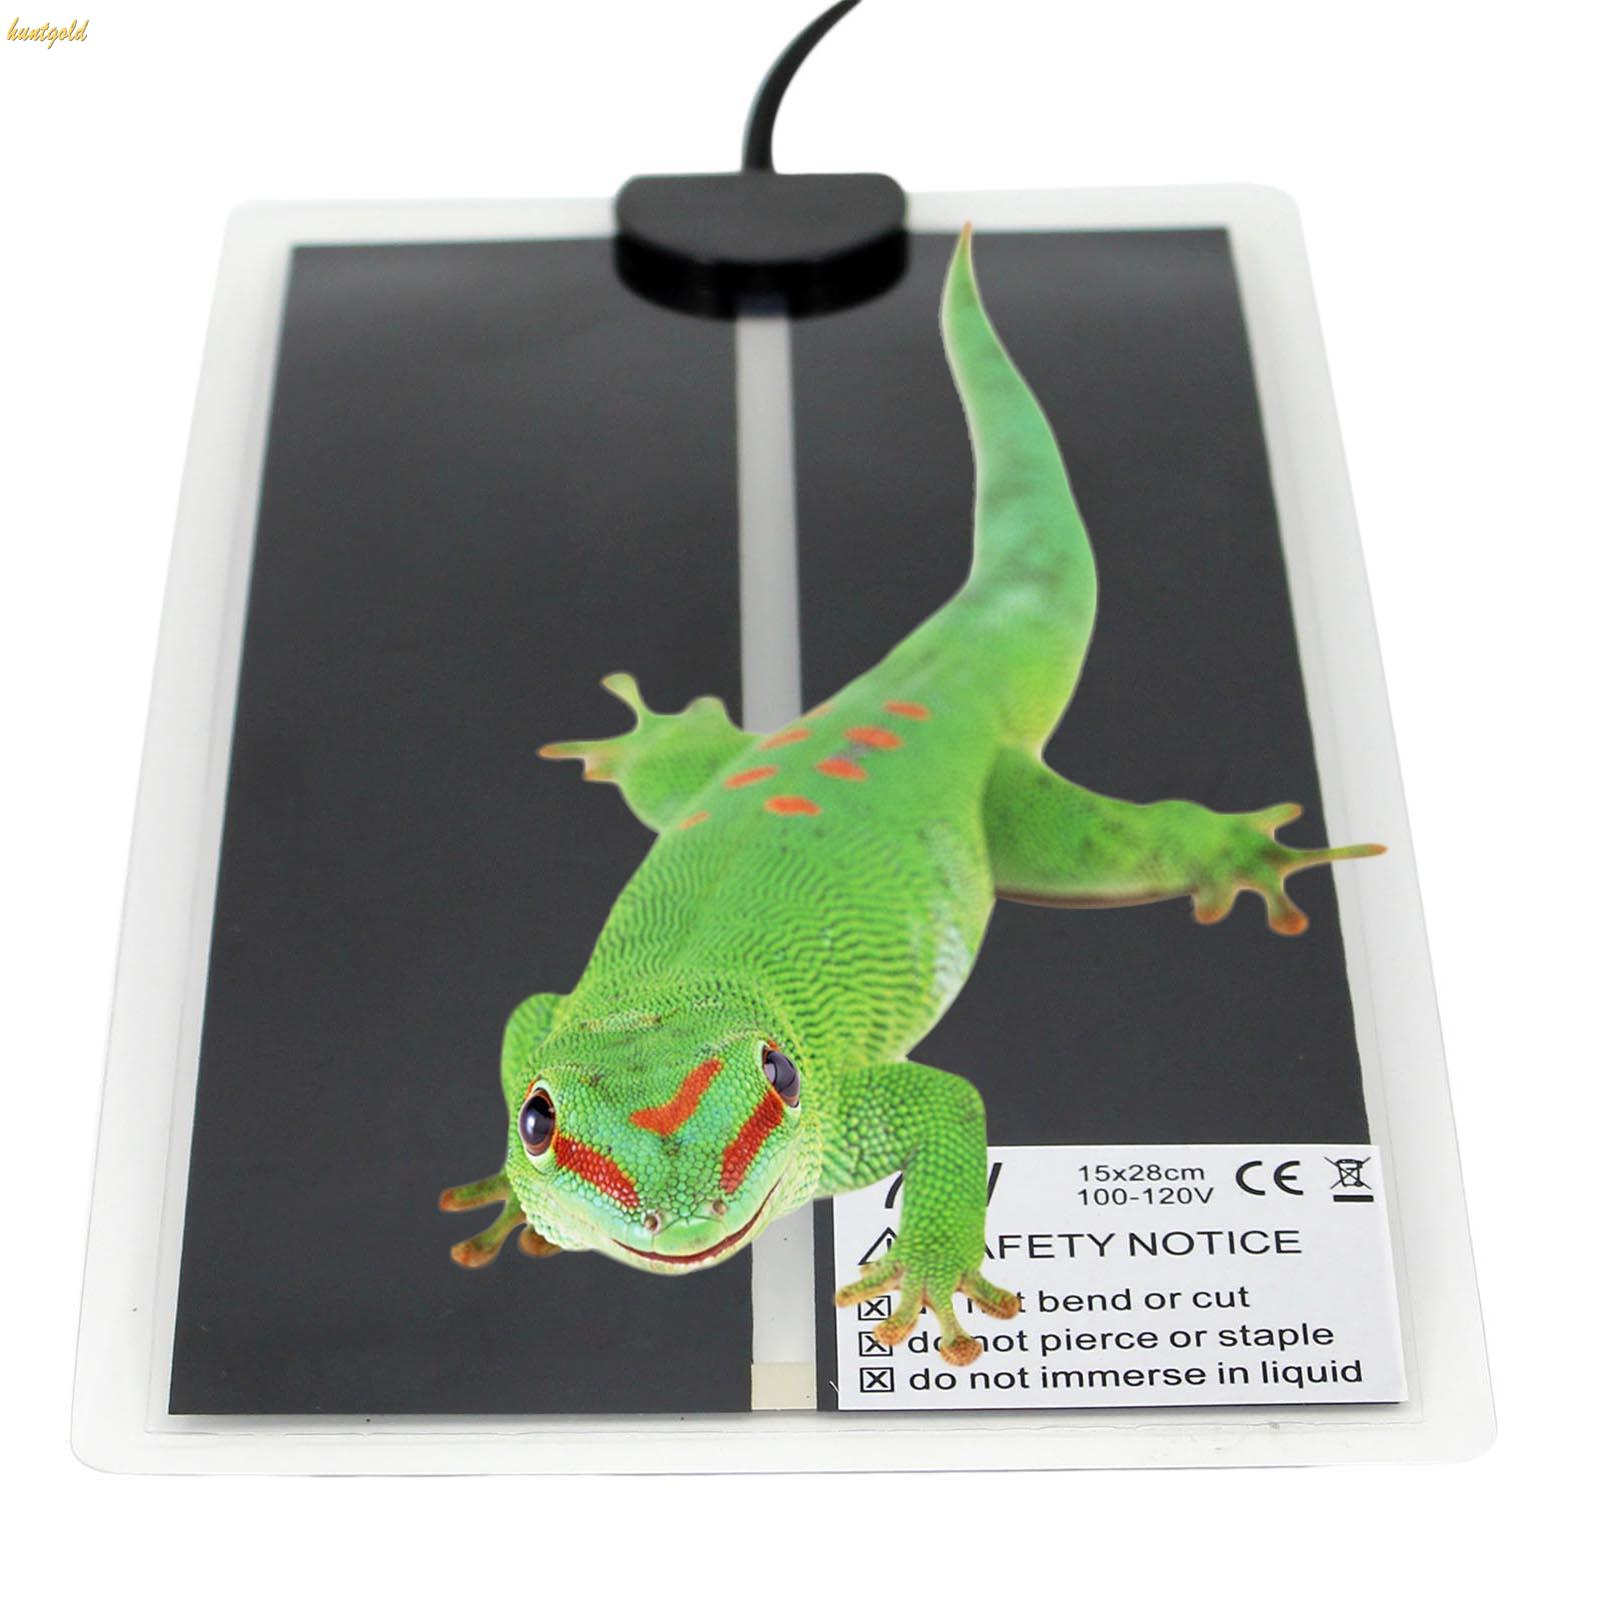 Hot selling warmer bed mat pad for reptile pet heating for Hot dog heating pad